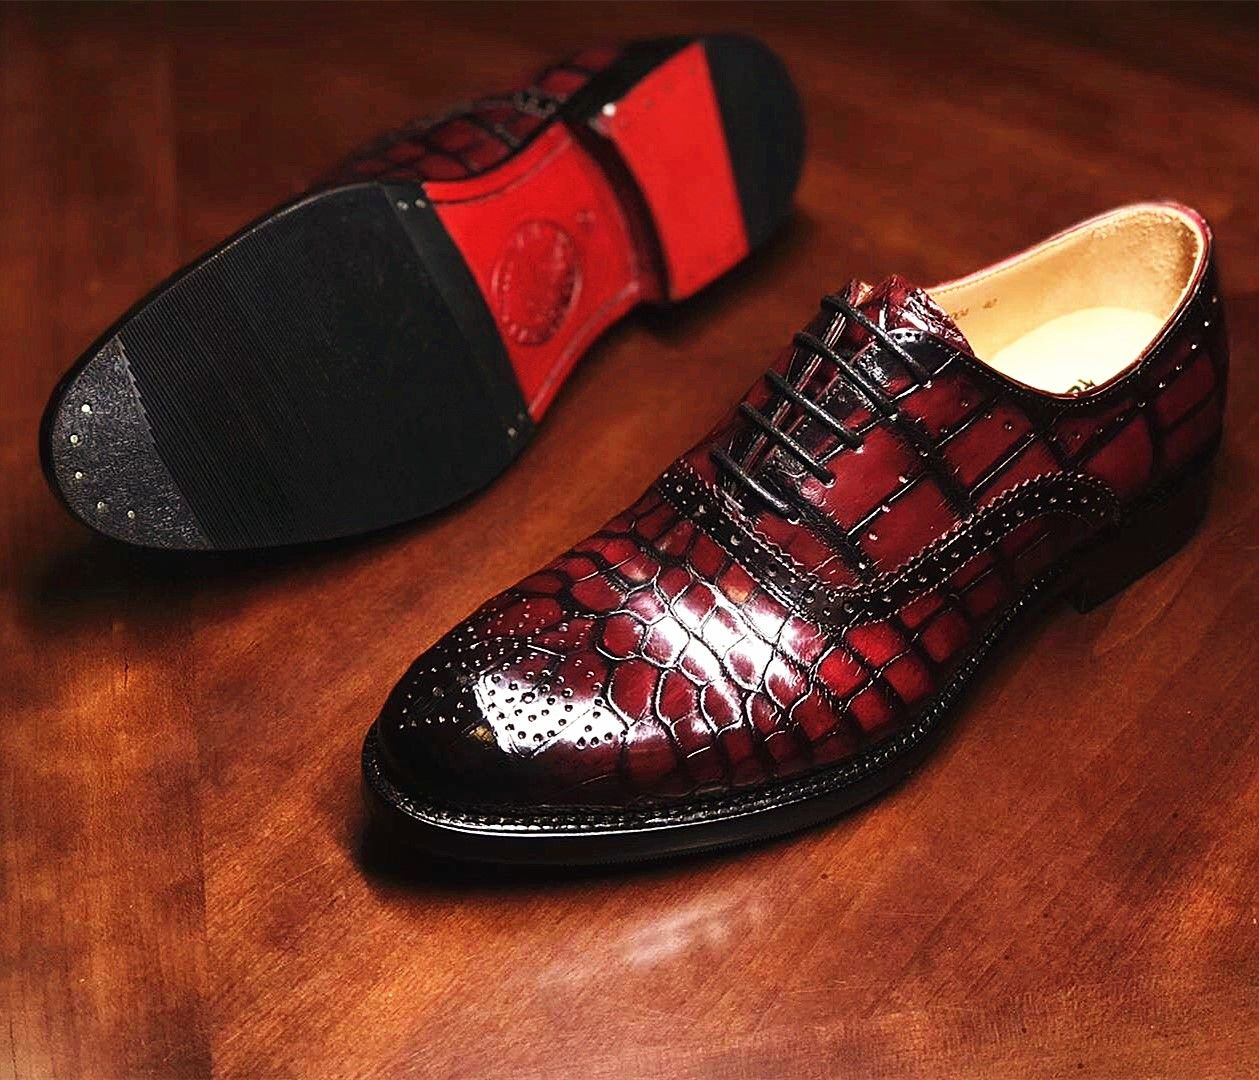 e67494a7996 BRUCEGAO's alligator shoes for sale   shoes in 2019   Shoes, Dress ...